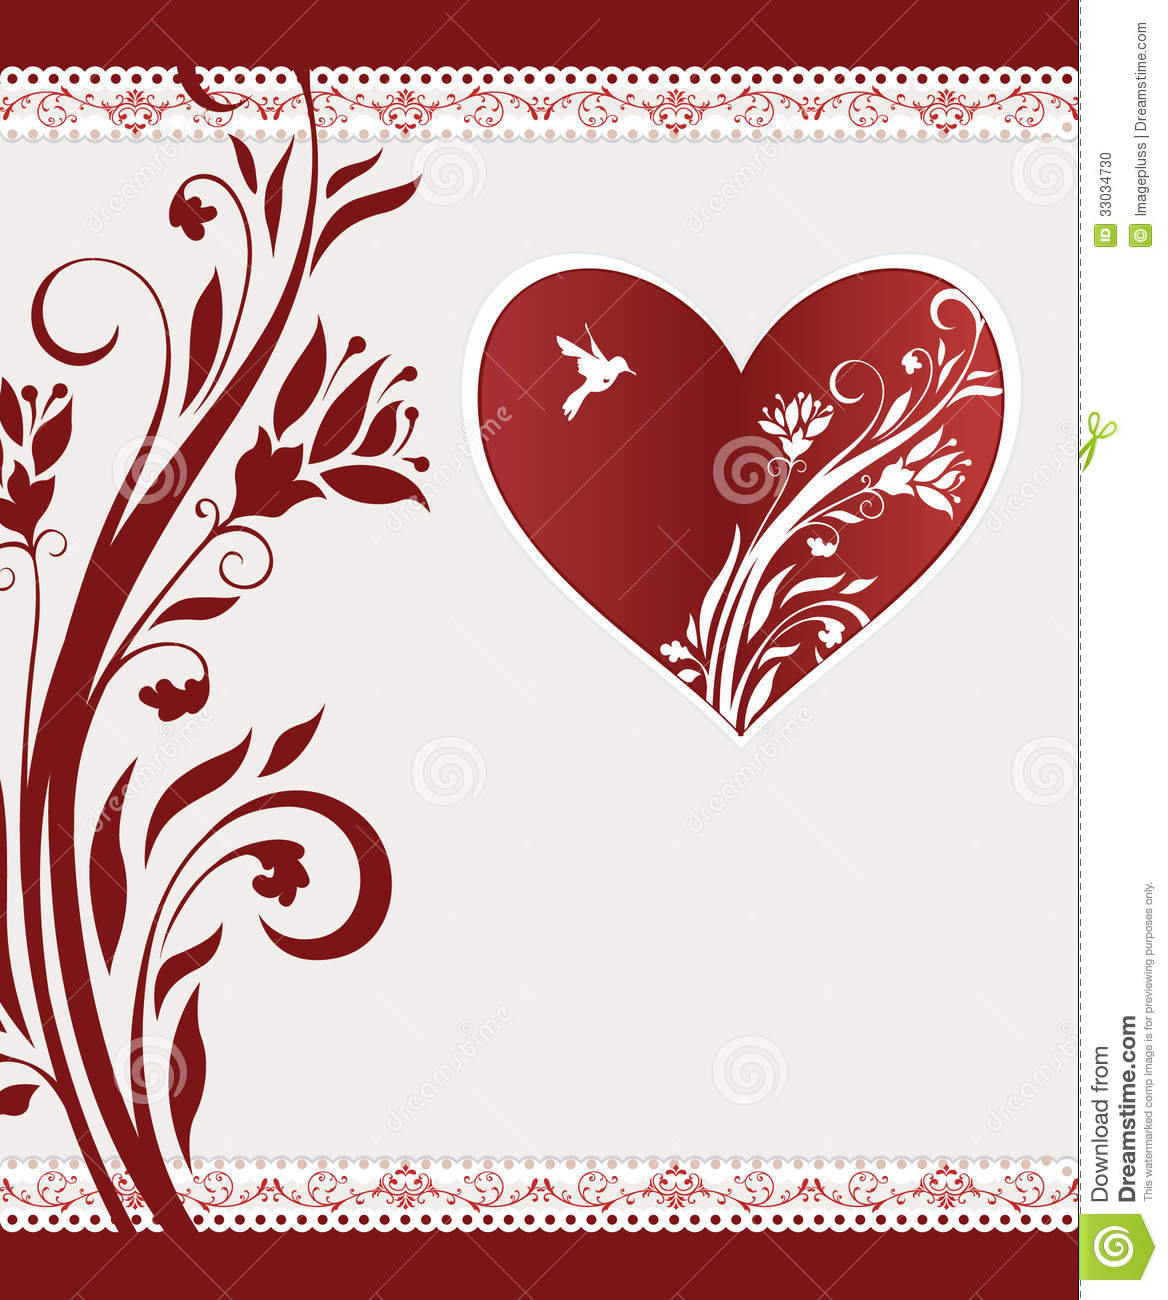 Wedding floral card stock vector. Illustration of anniversary - 33034730